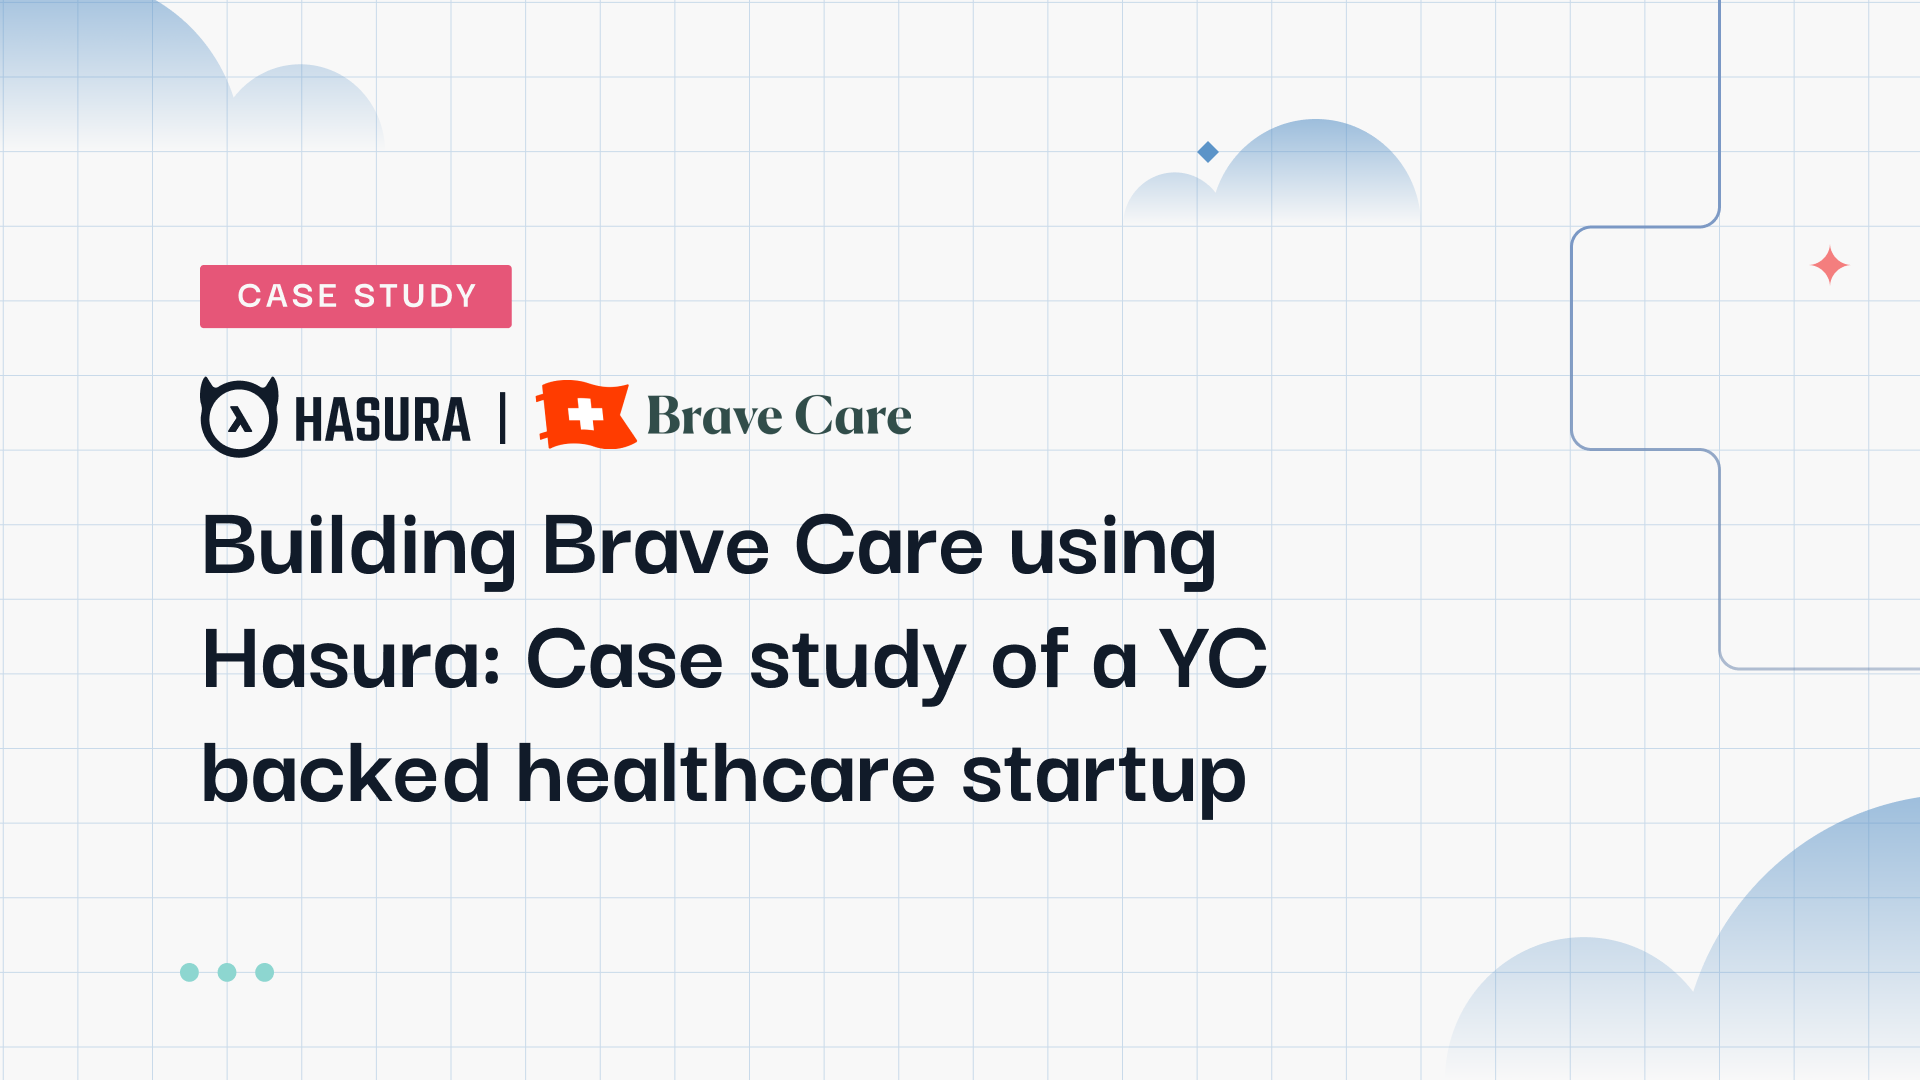 Building Brave Care using Hasura: A case study of a YC backed healthcare startup